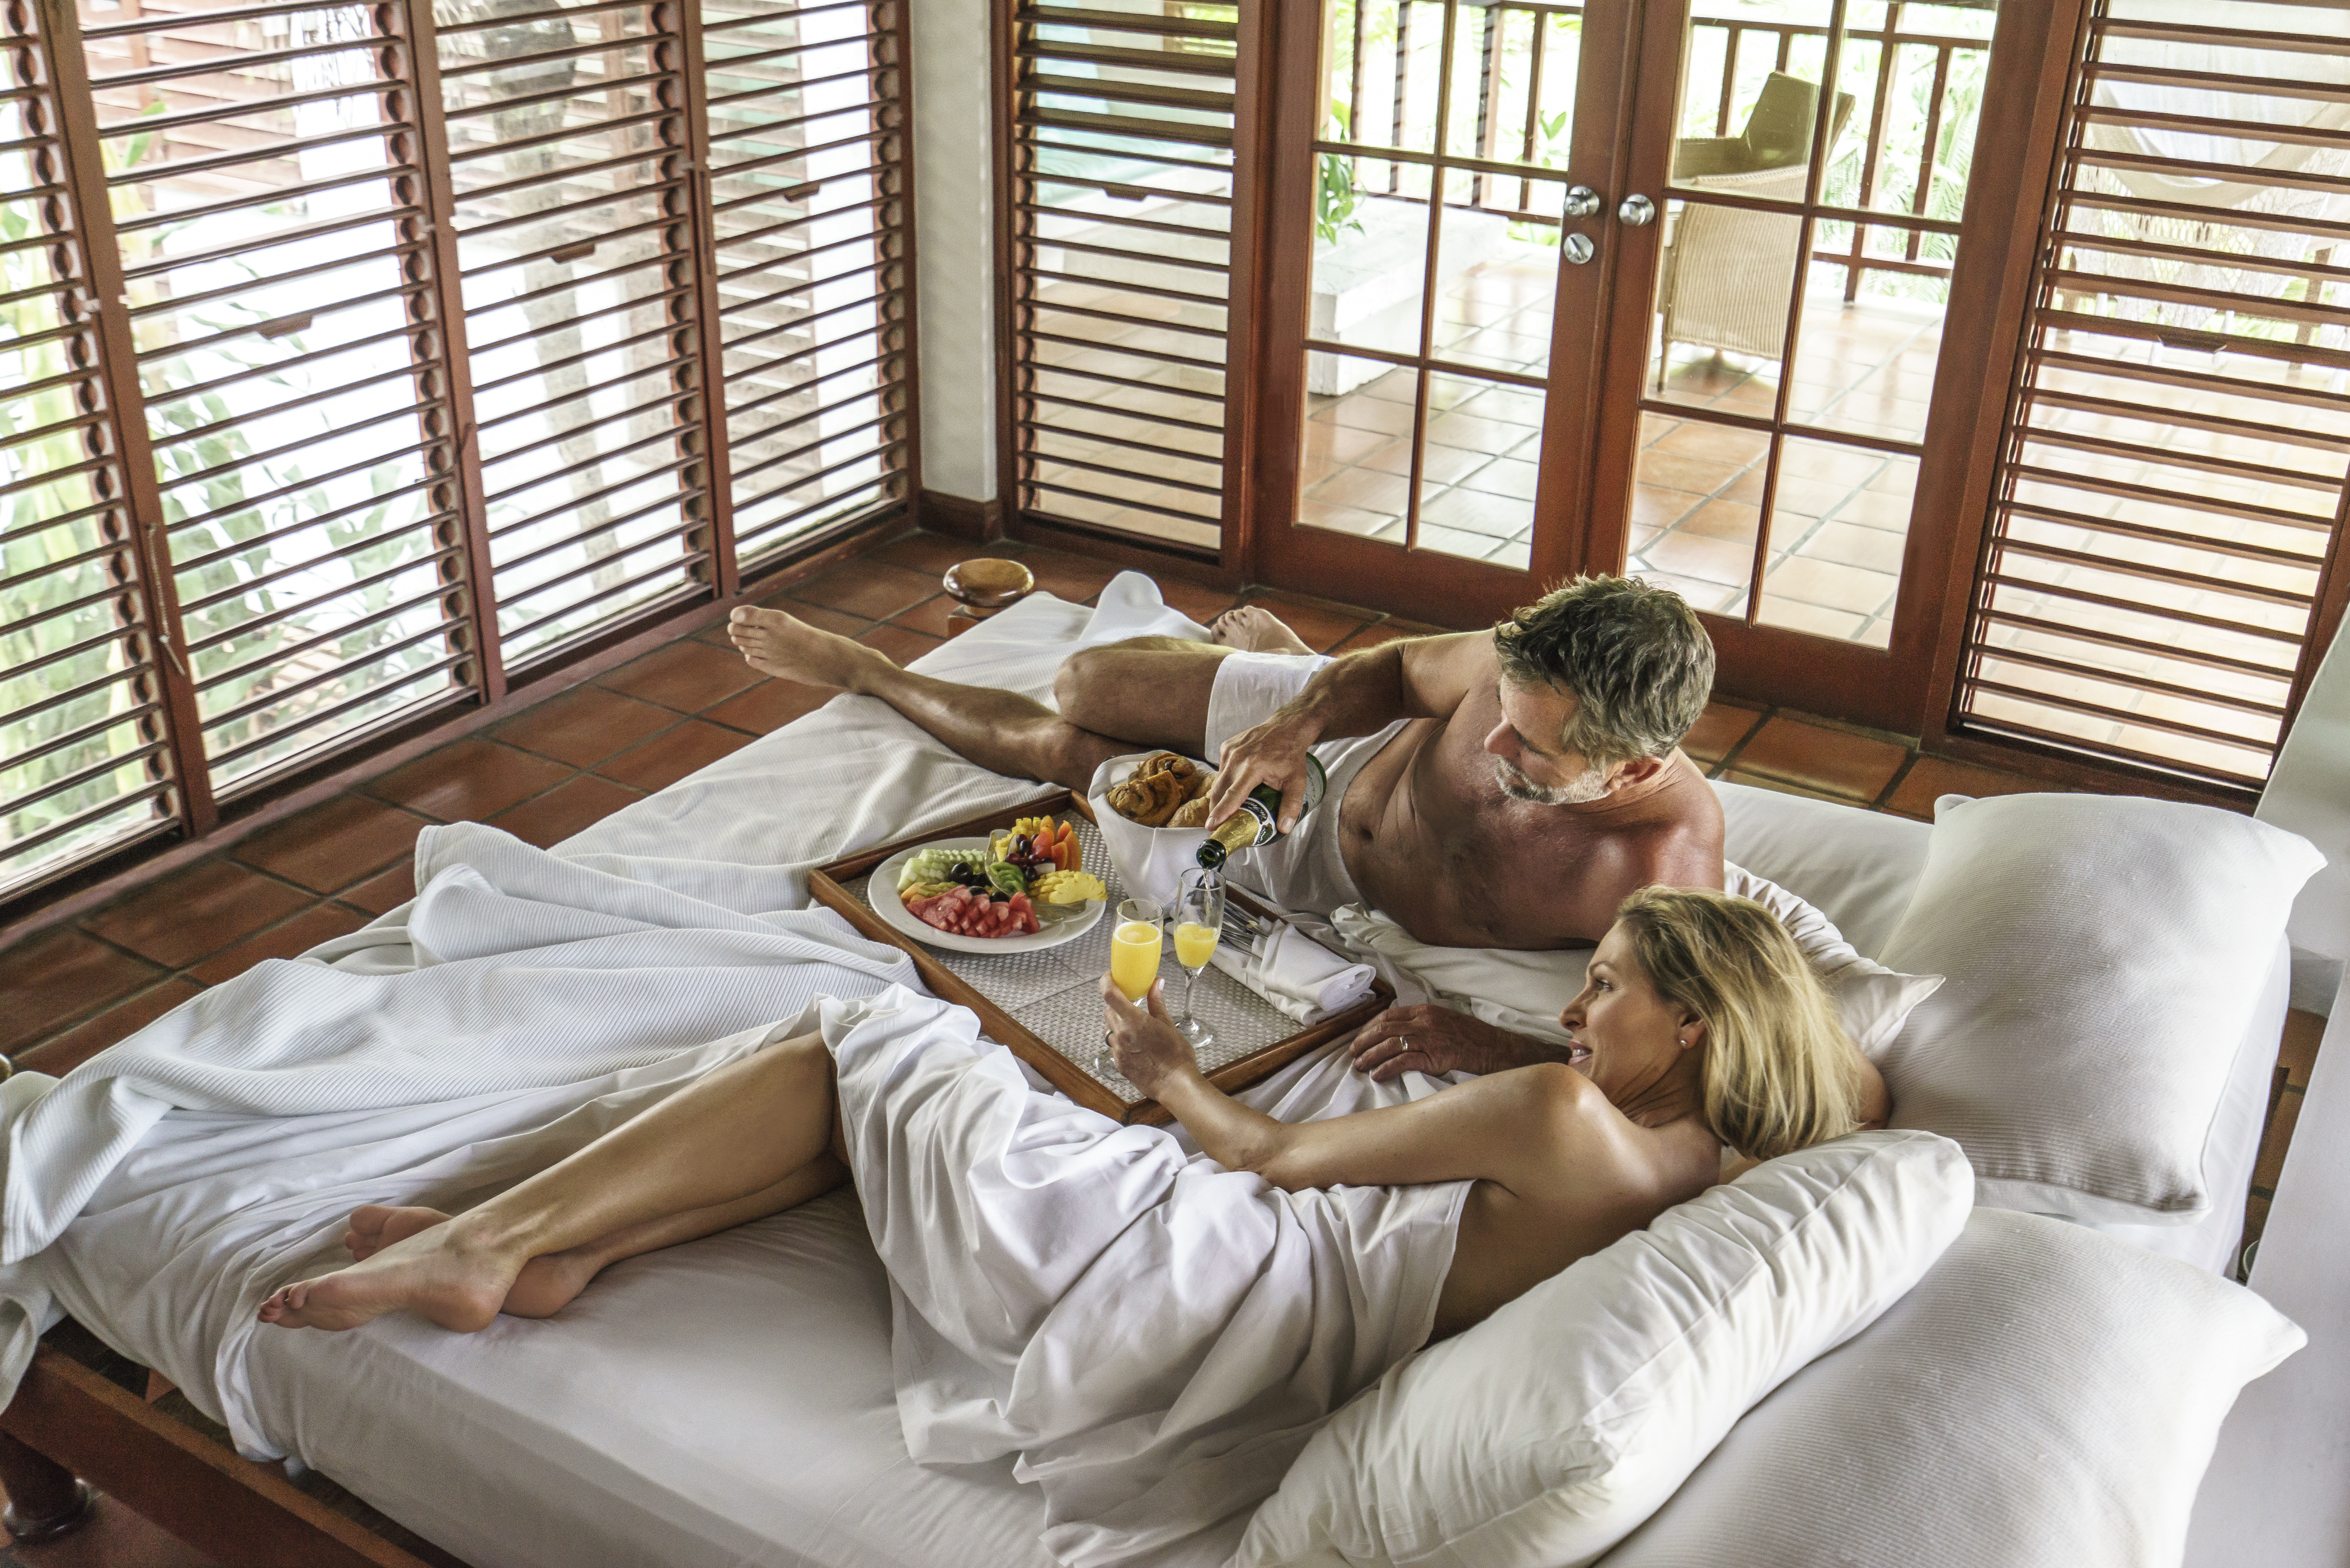 Travel Agency All-Inclusive Resort Couples Swept Away 18